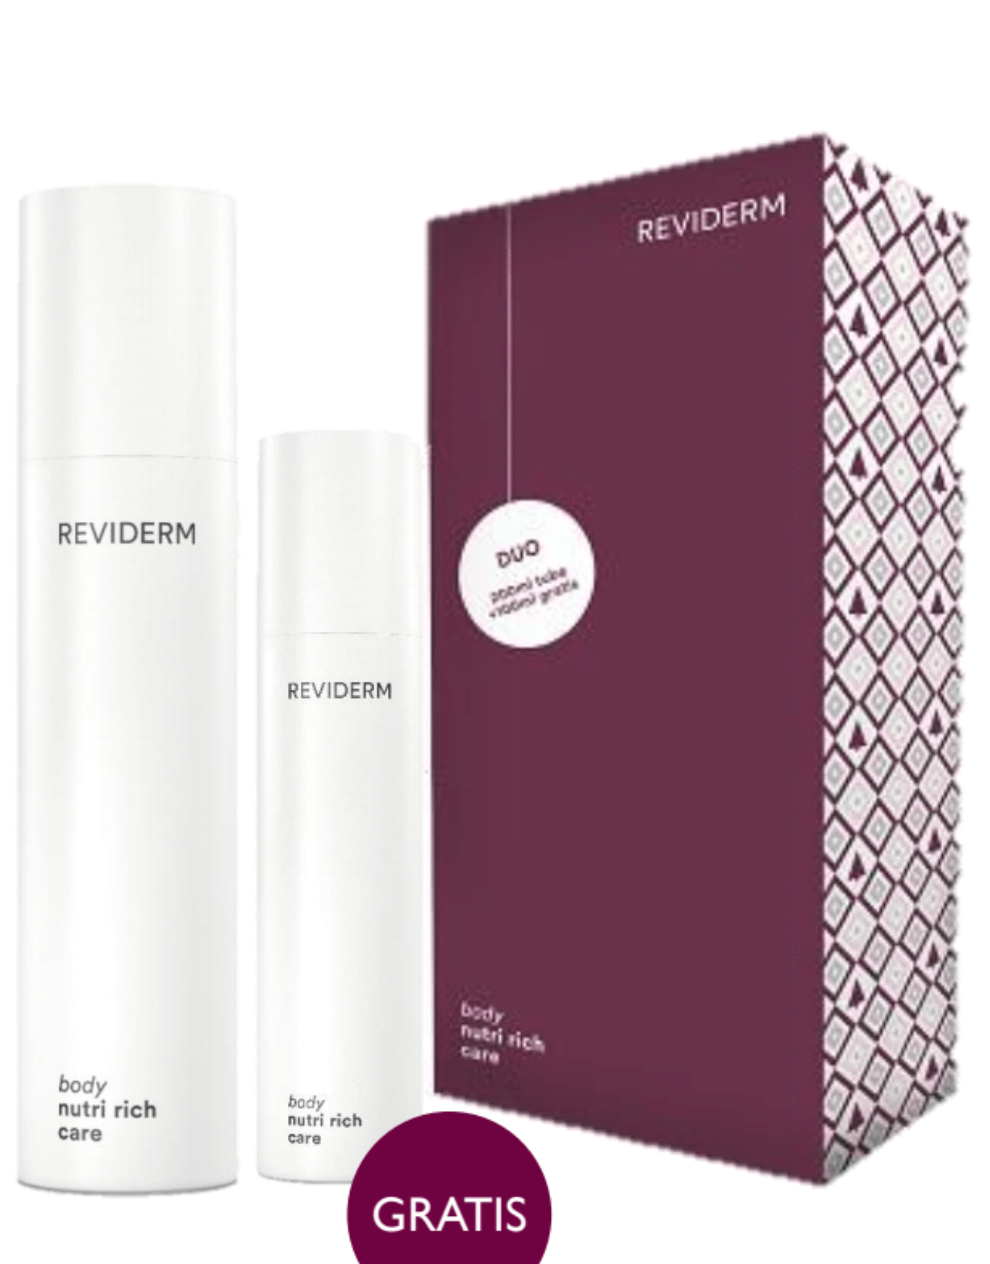 Reviderm Body Nutri Rich Care Duo